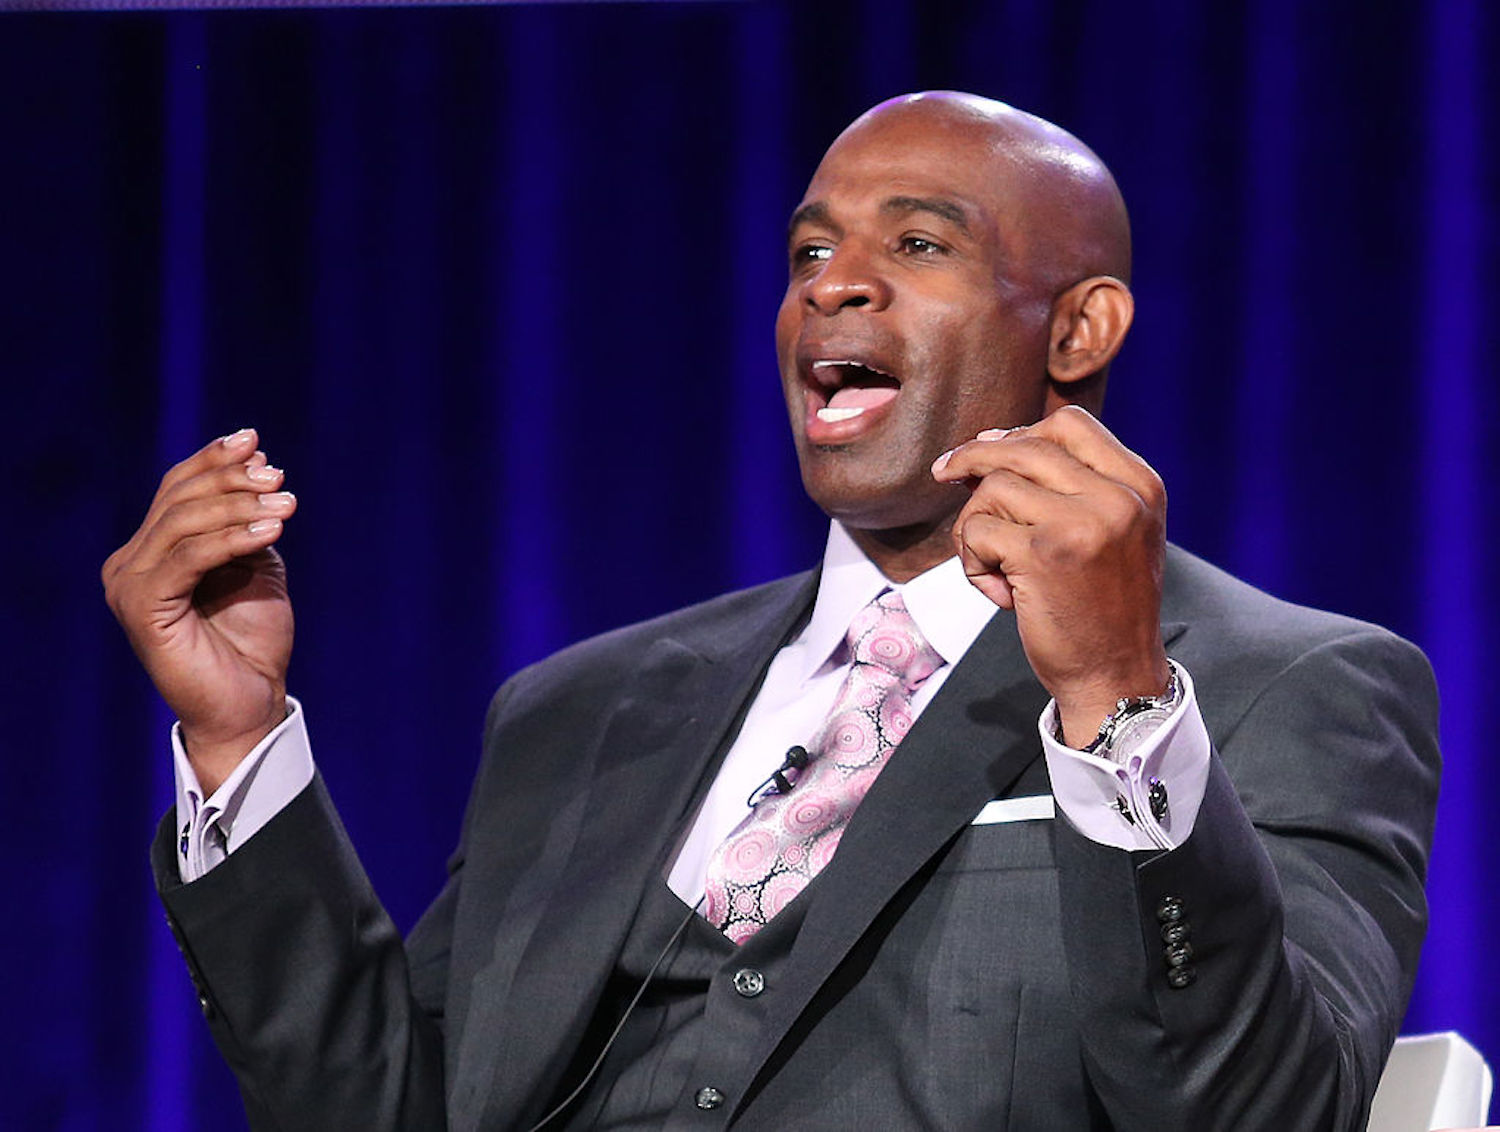 Deion Sanders has been wanting a bigger platform to share his uncut opinions, and he finally found it with Barstool Sports.